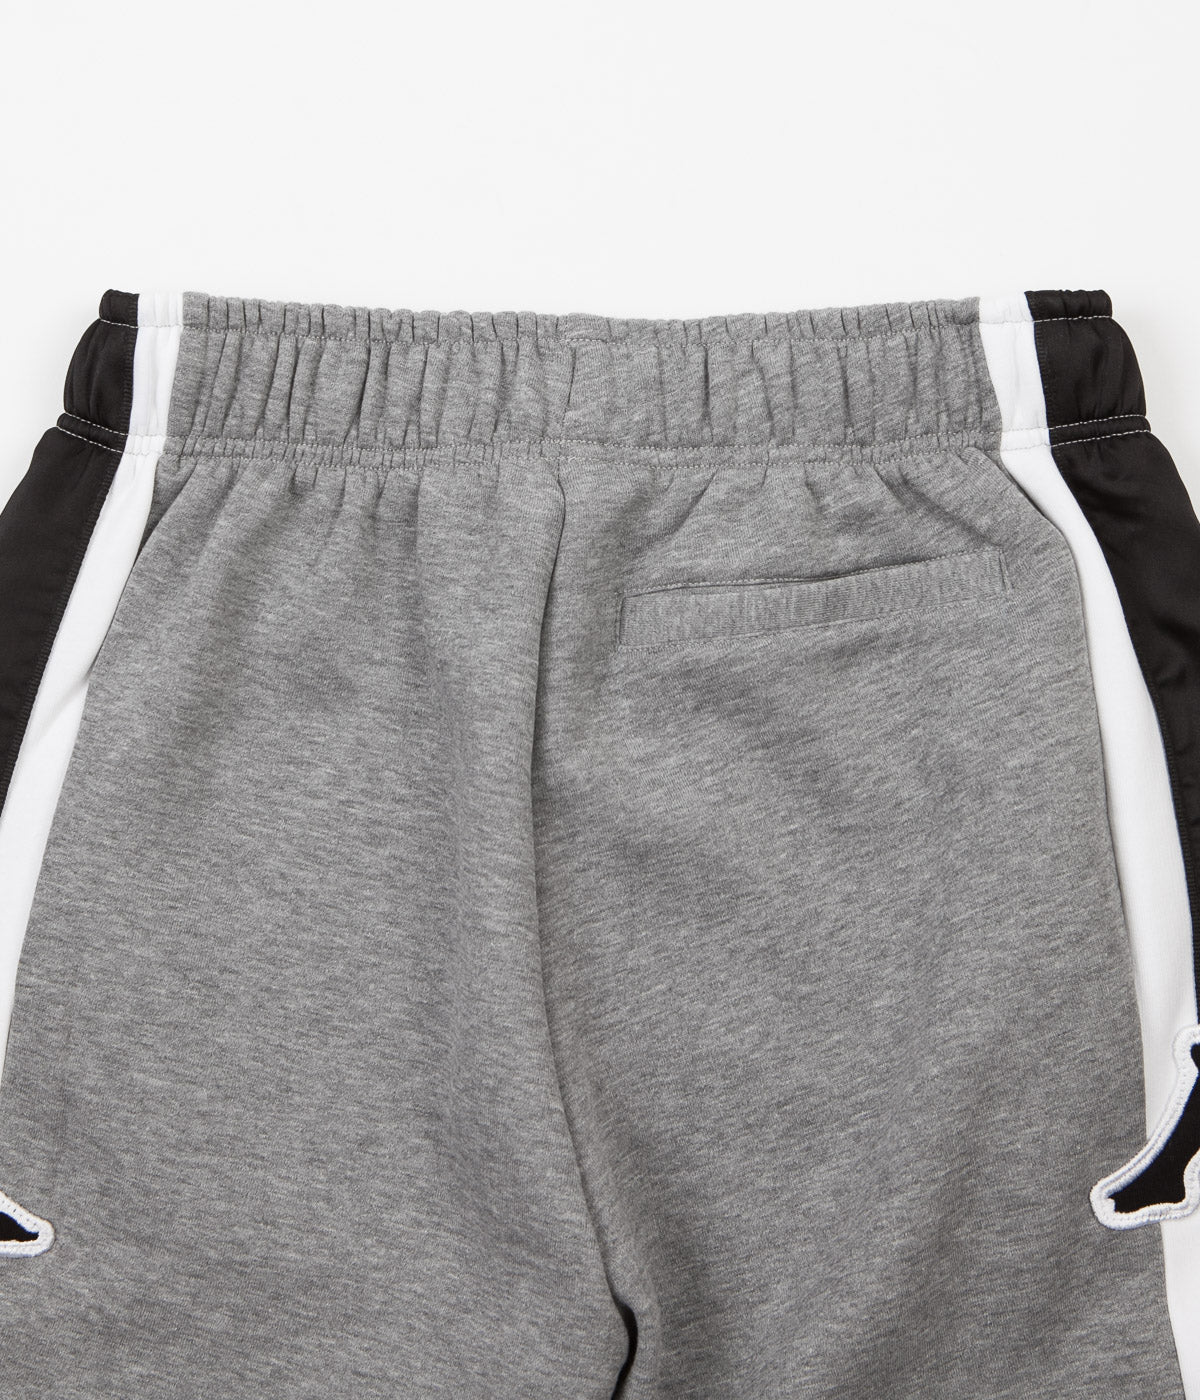 Kappa Kontroll Big Omini Sweatpants - Grey Mid Melange / Black